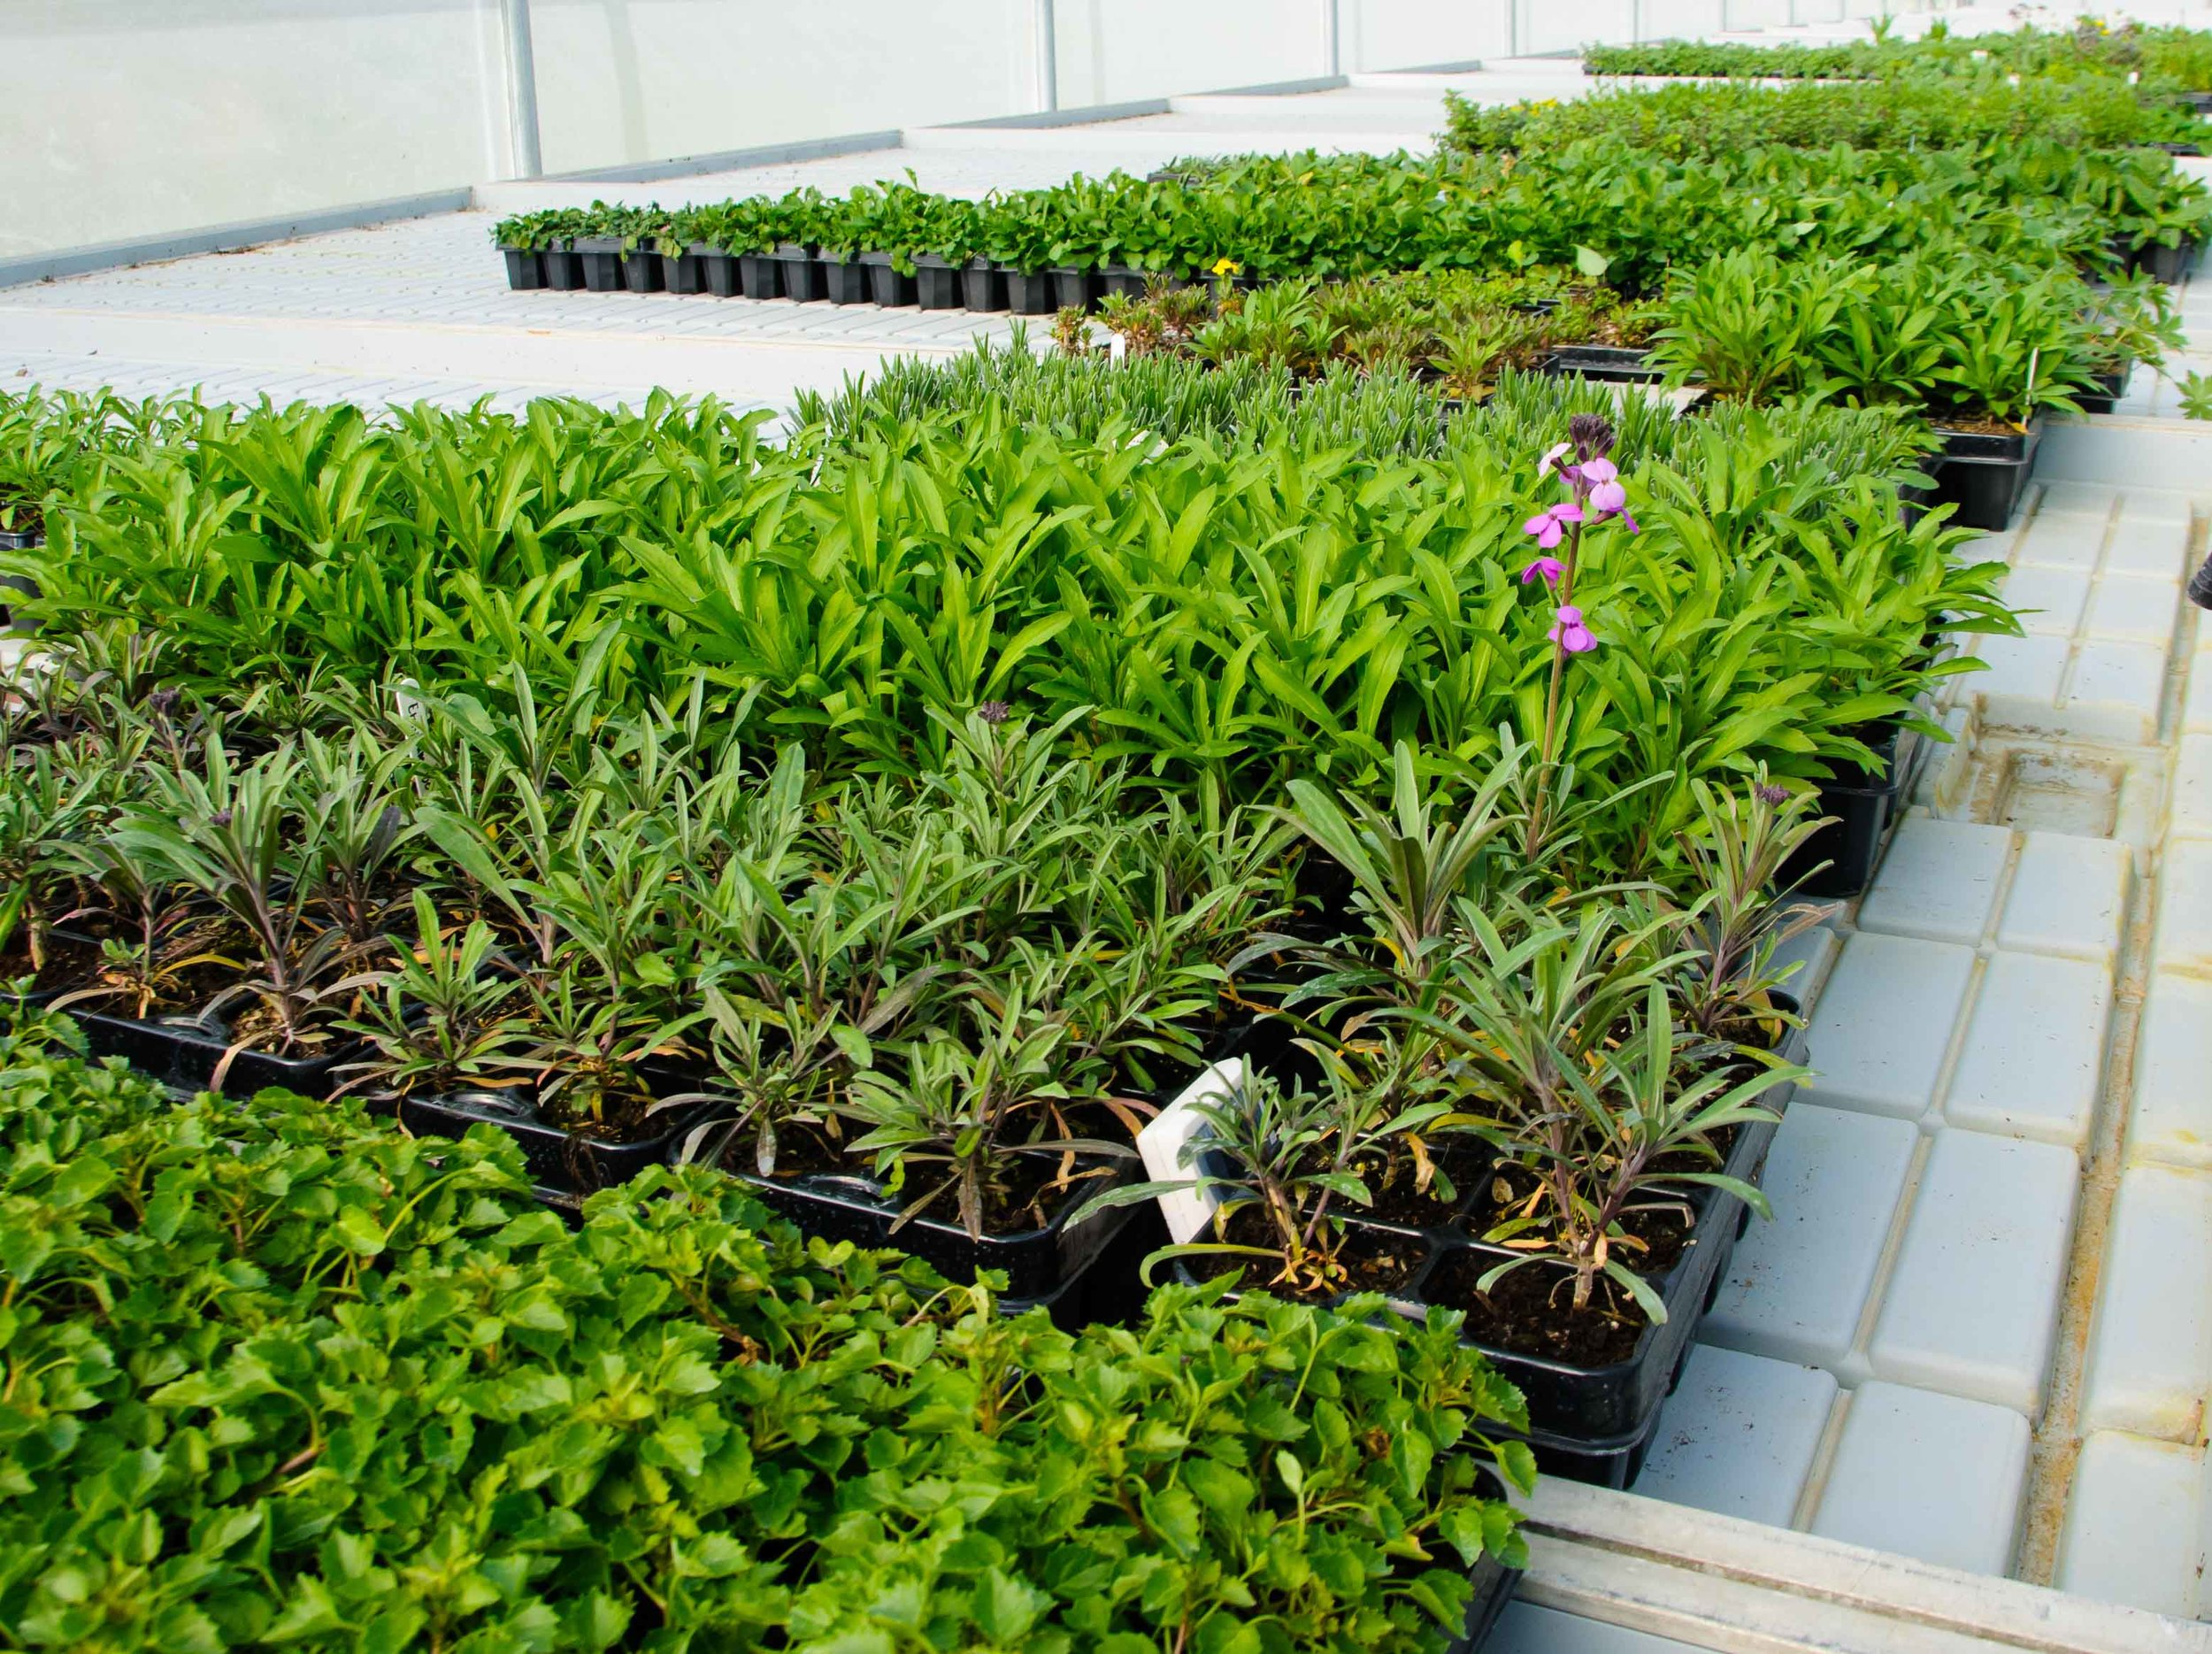 Our plants in the polytunnel ready to send out